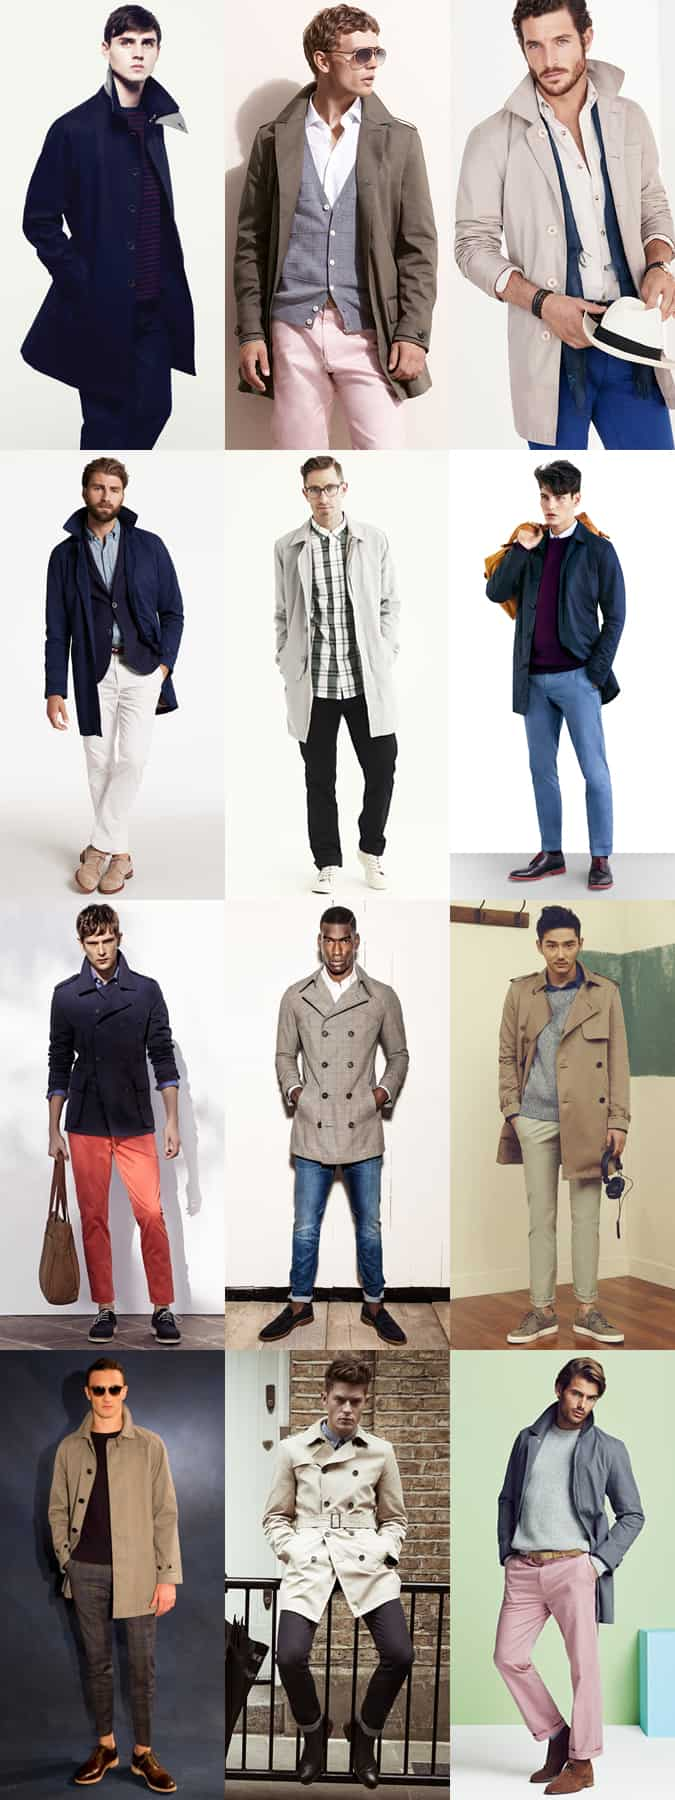 Men's Long Length, Lightweight Mac/Trench Outfit Inspiration Lookbook - Transitional Season